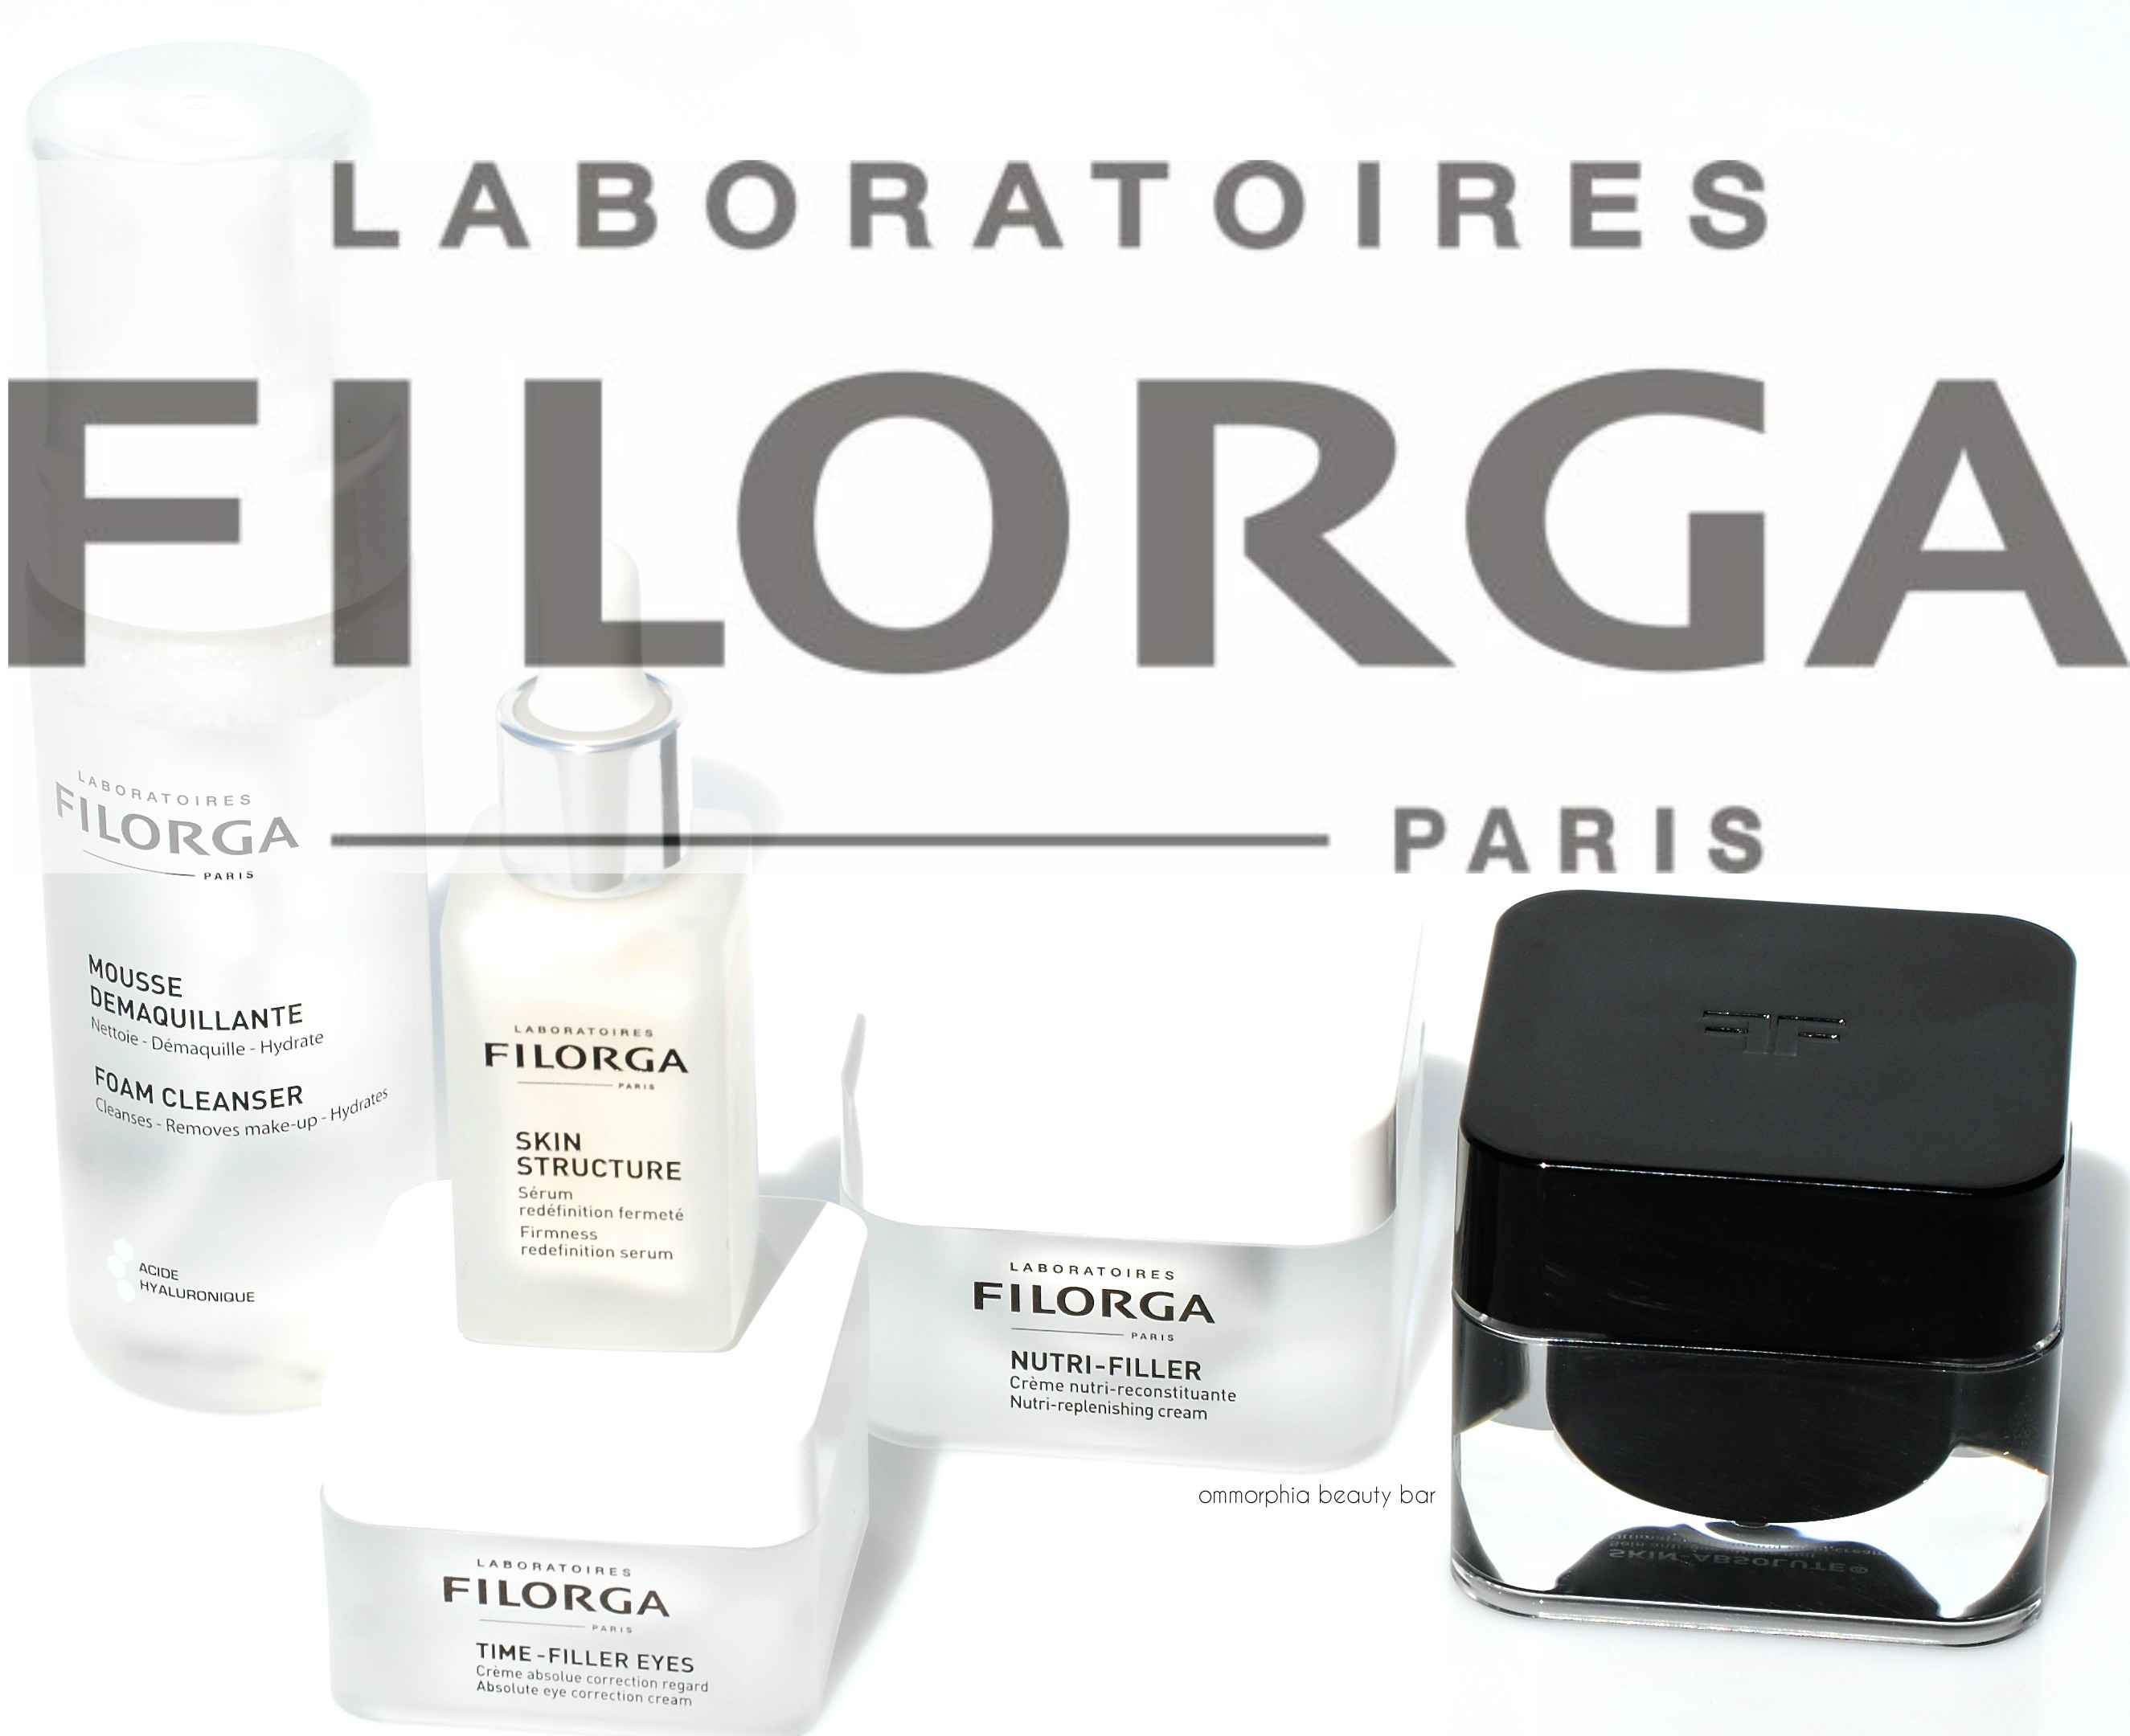 laboratoires filorga paris ommorphia beauty bar. Black Bedroom Furniture Sets. Home Design Ideas